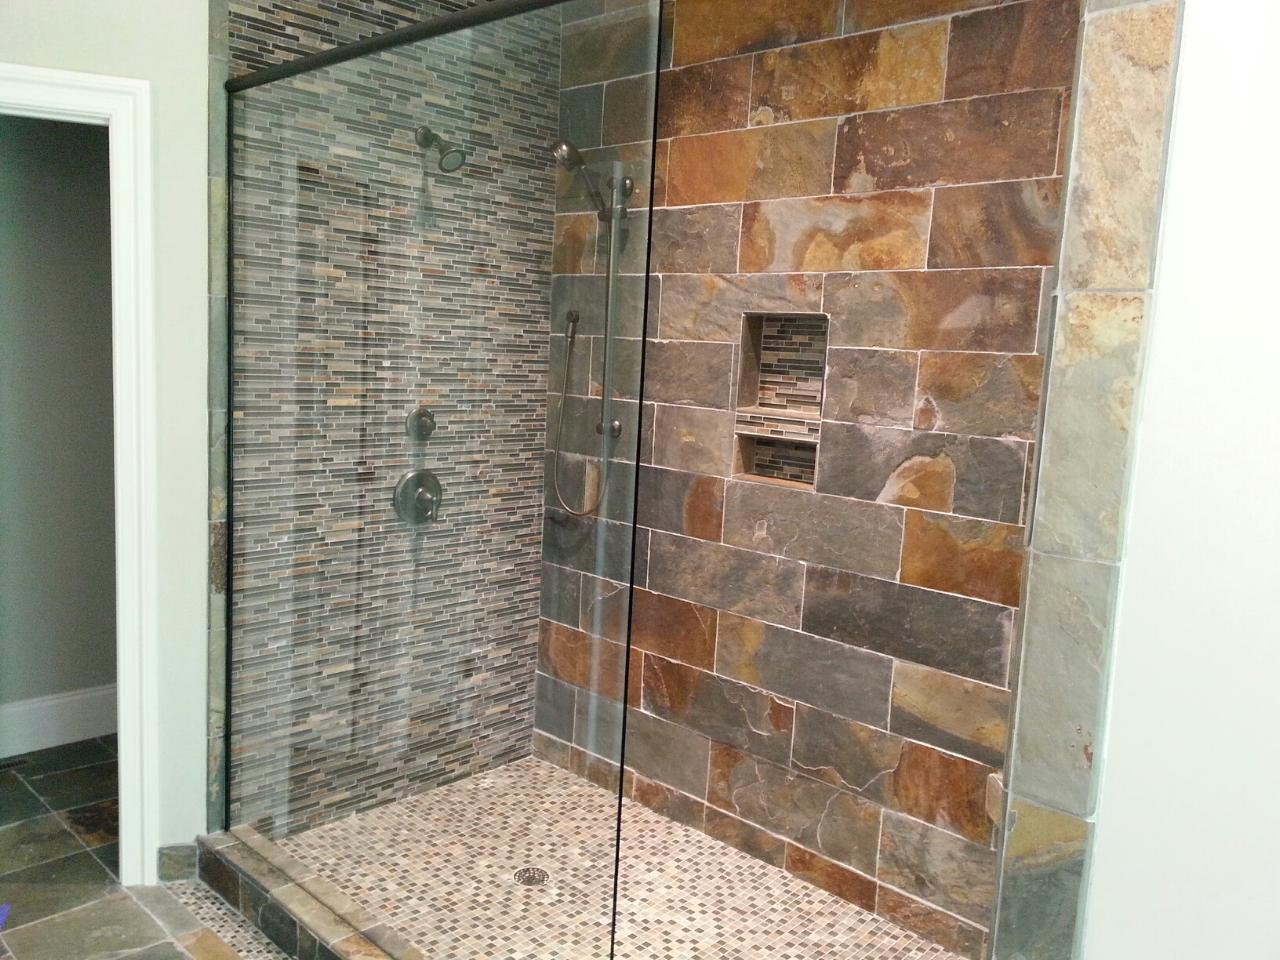 ... Bathroom Gorgeous Bathroom Design Idea With Shower Stall  ...